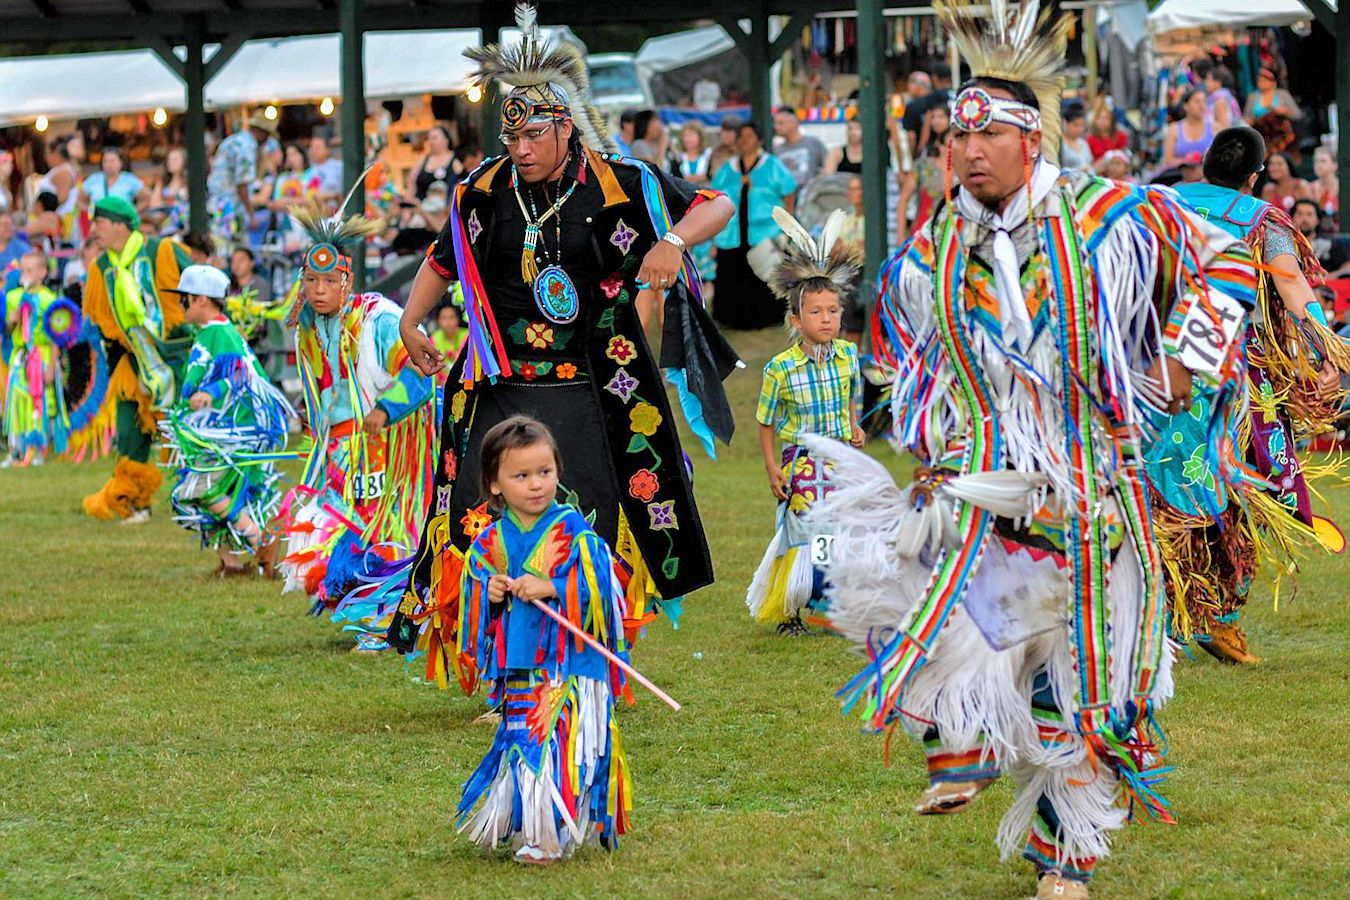 LCO Honor the Earth Pow Wow - LCO Powwow Grounds - Lac Courte Oreille Band of Lake Superior Chippewa Indians